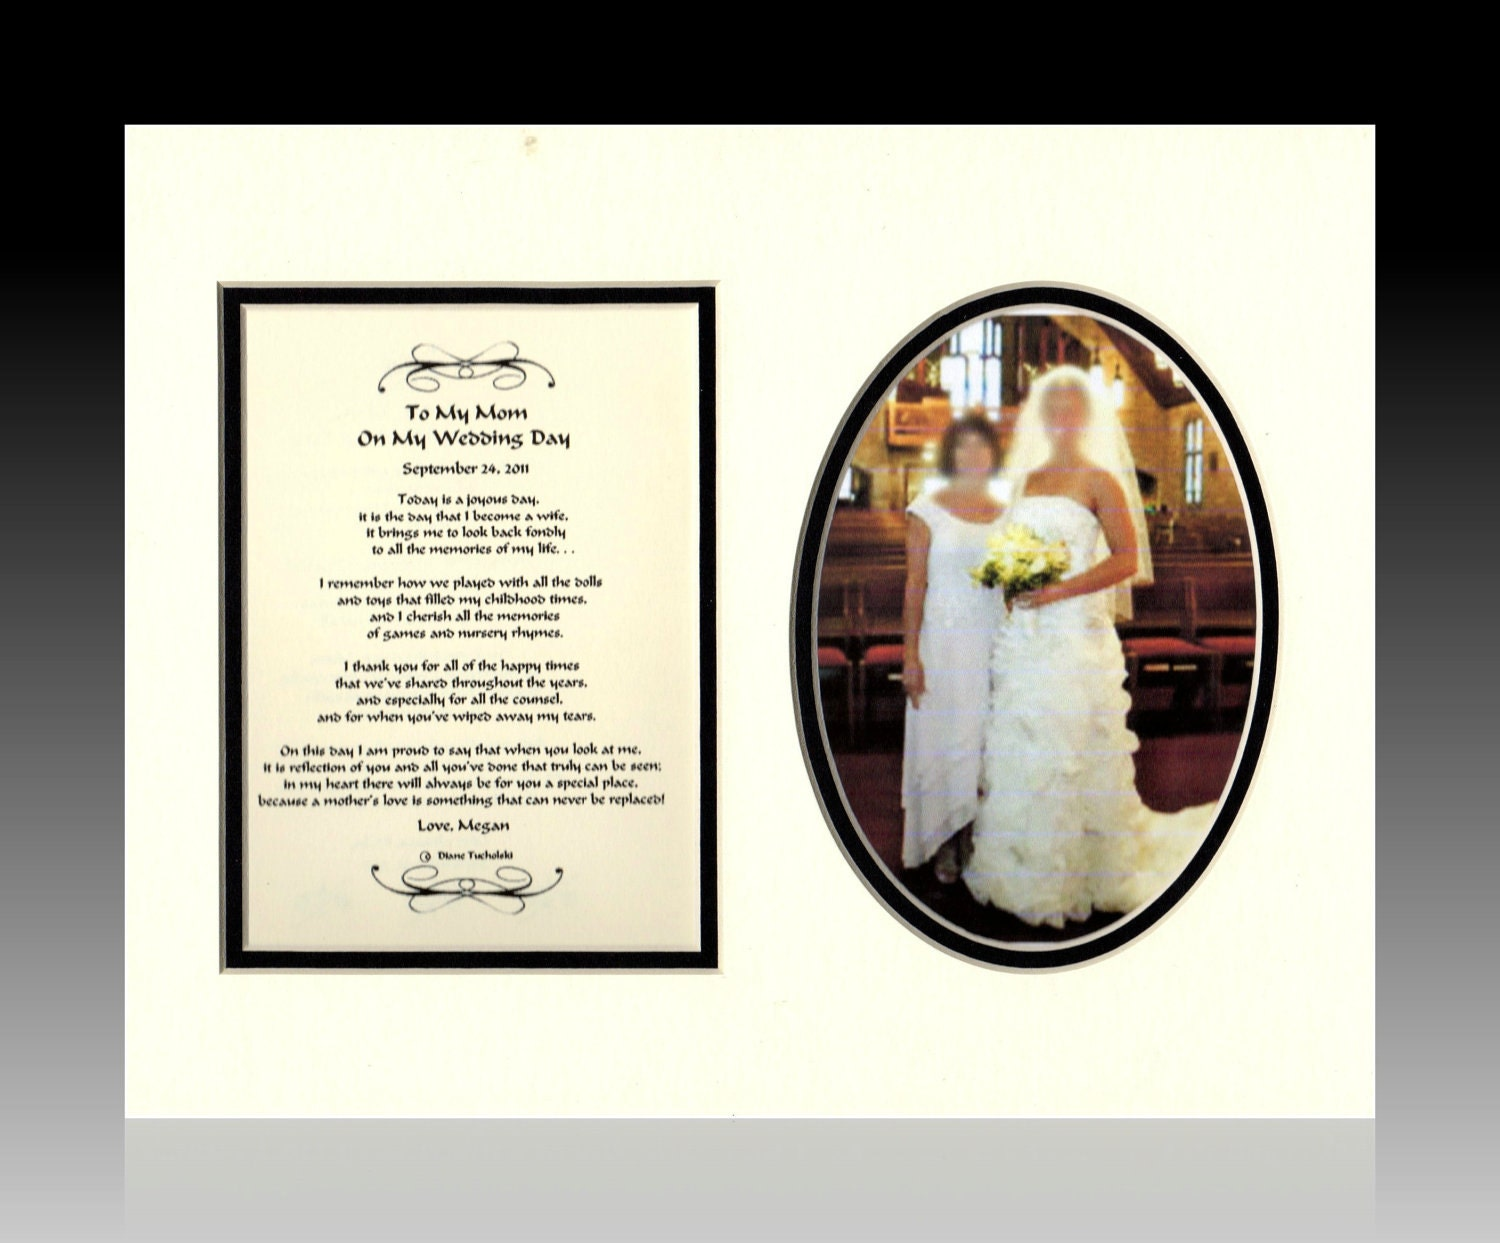 Wedding Gifts For Mom From Bride : Wedding Mother of The Bride Gift Personalized To My Mom on My